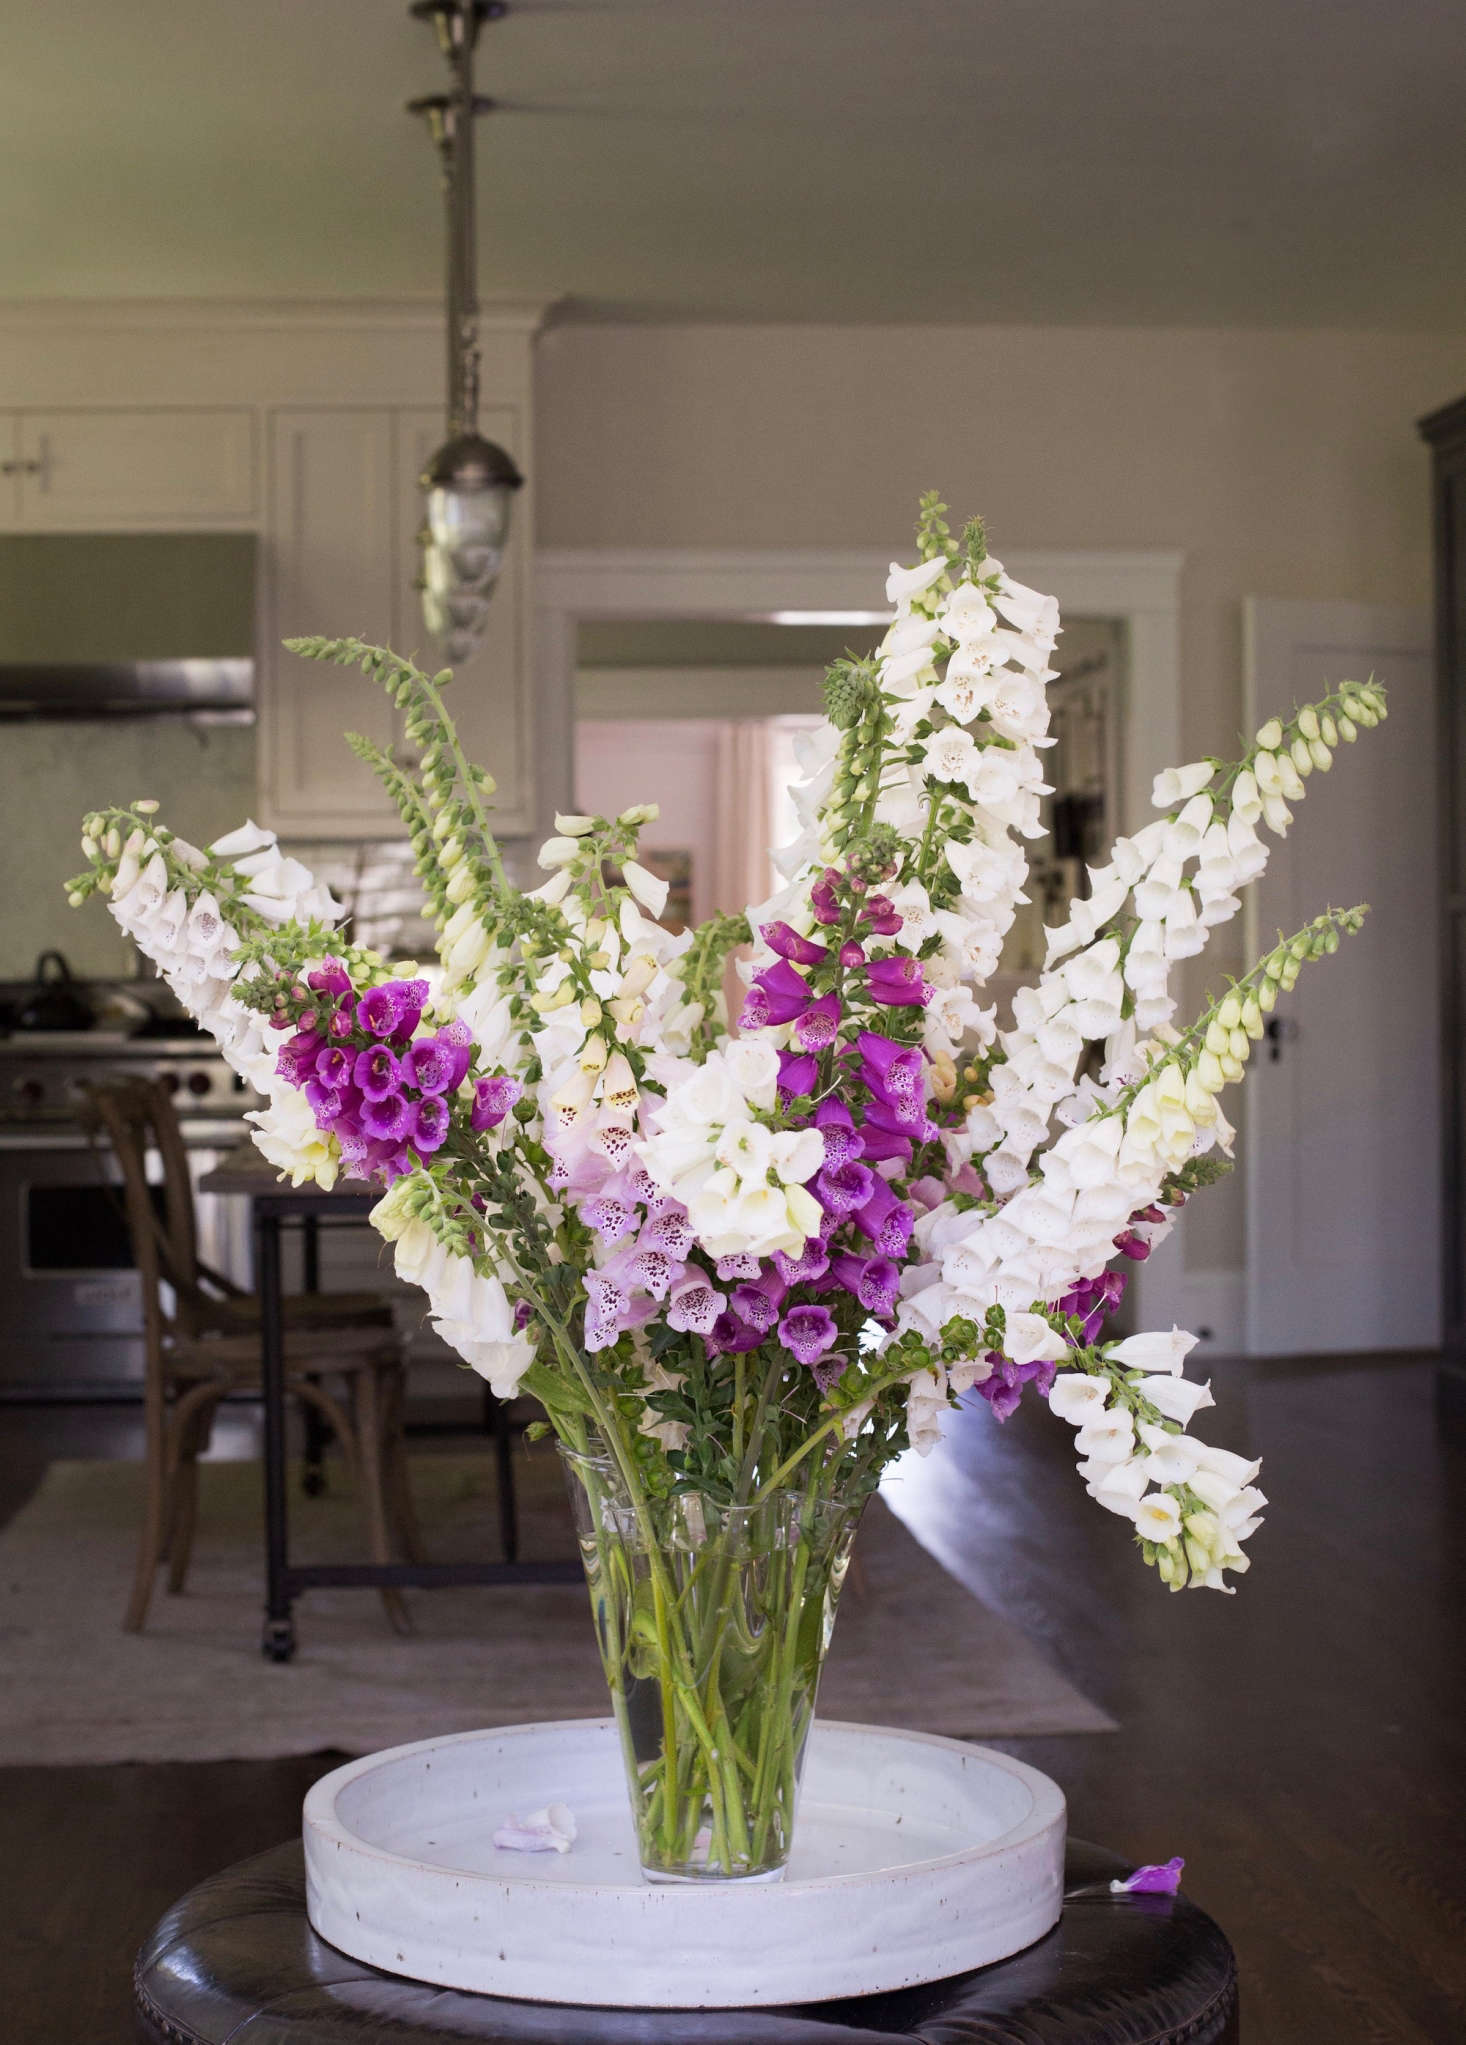 As cut flowers go, foxgloves are heavy drinkers. I&#8